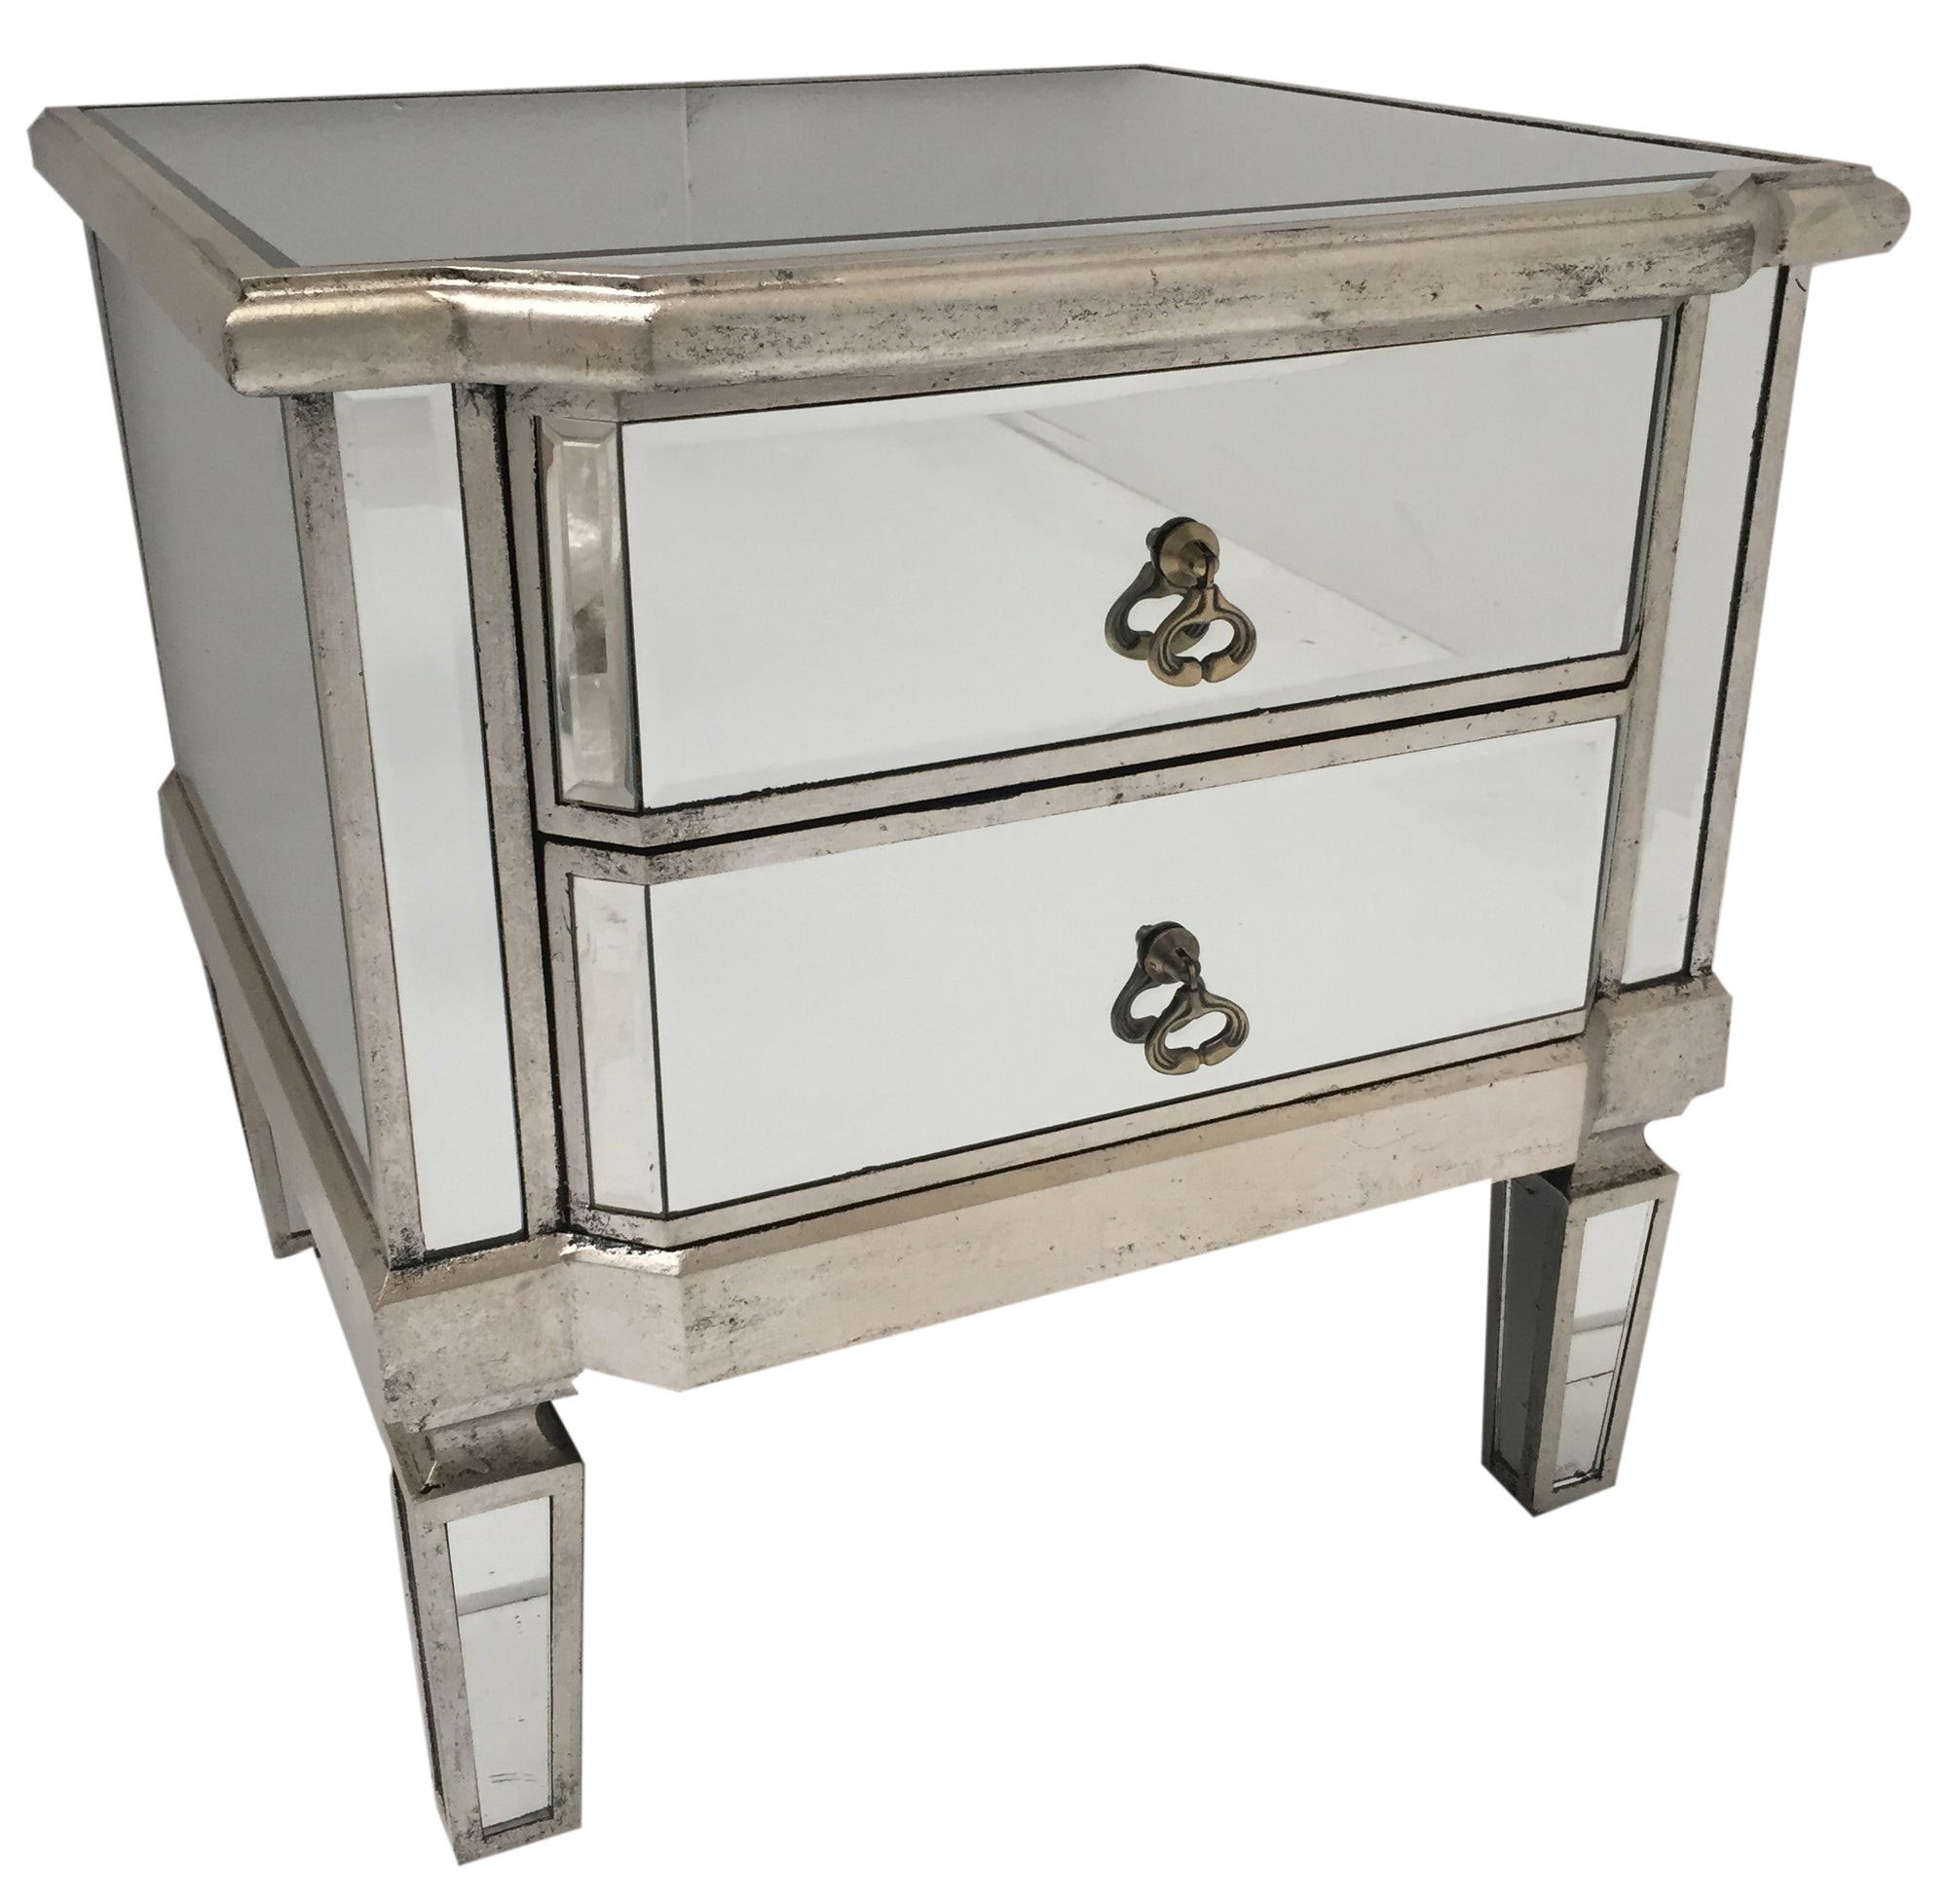 Mirrored Bedside Table 2 Drawers Vintage Silver Finish